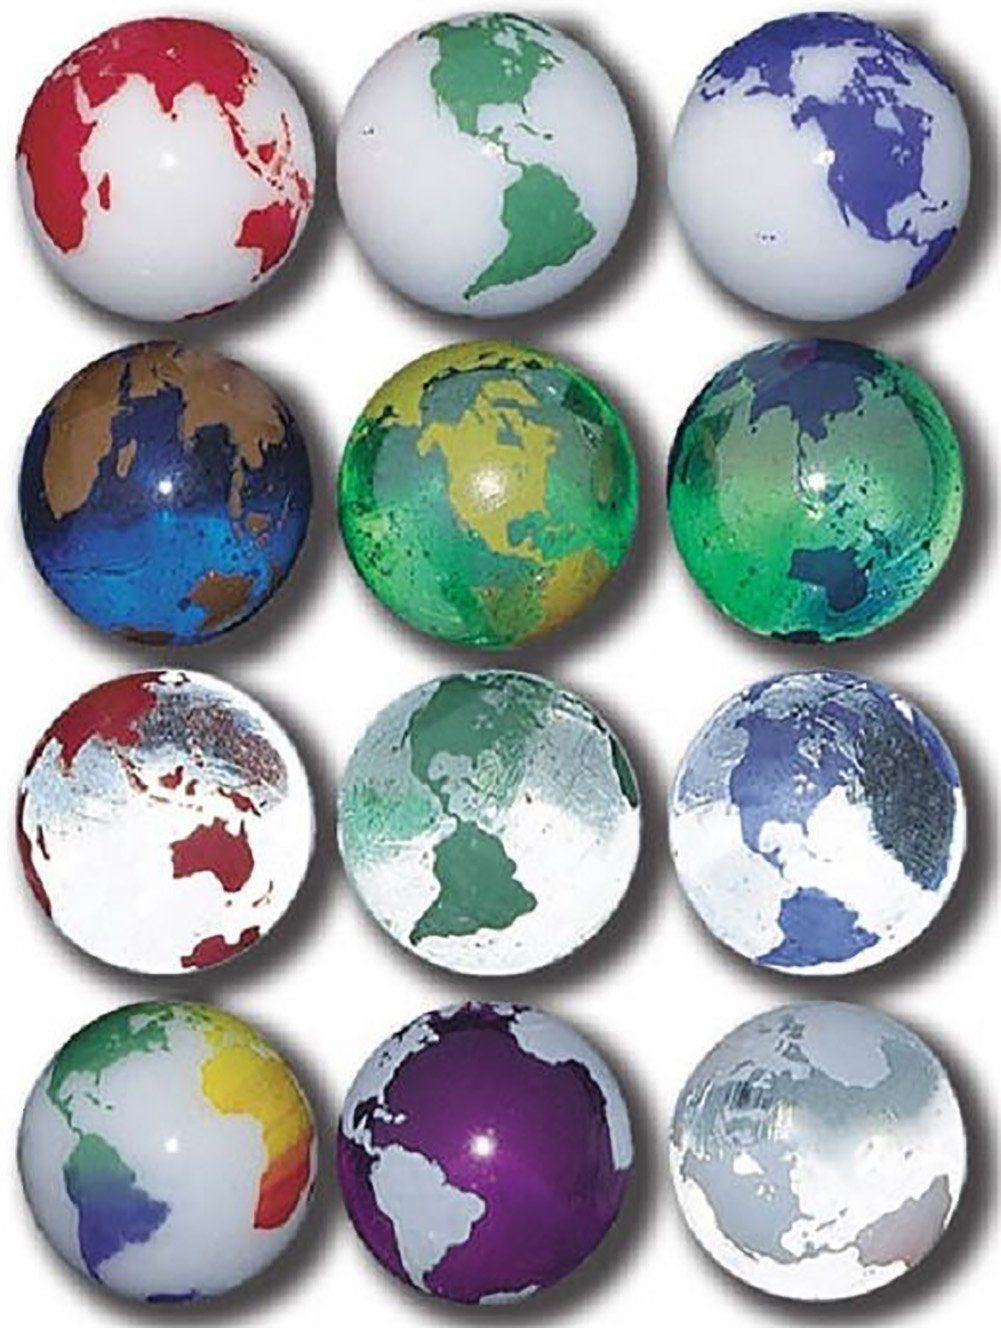 world globe vase of unique and custom 7 8 inch set of 5 big round opaque and clear throughout unique and custom 7 8 inch set of 5 big round opaque and clear marbles made of glass for filling vases games and decor w fun vibrant earth world